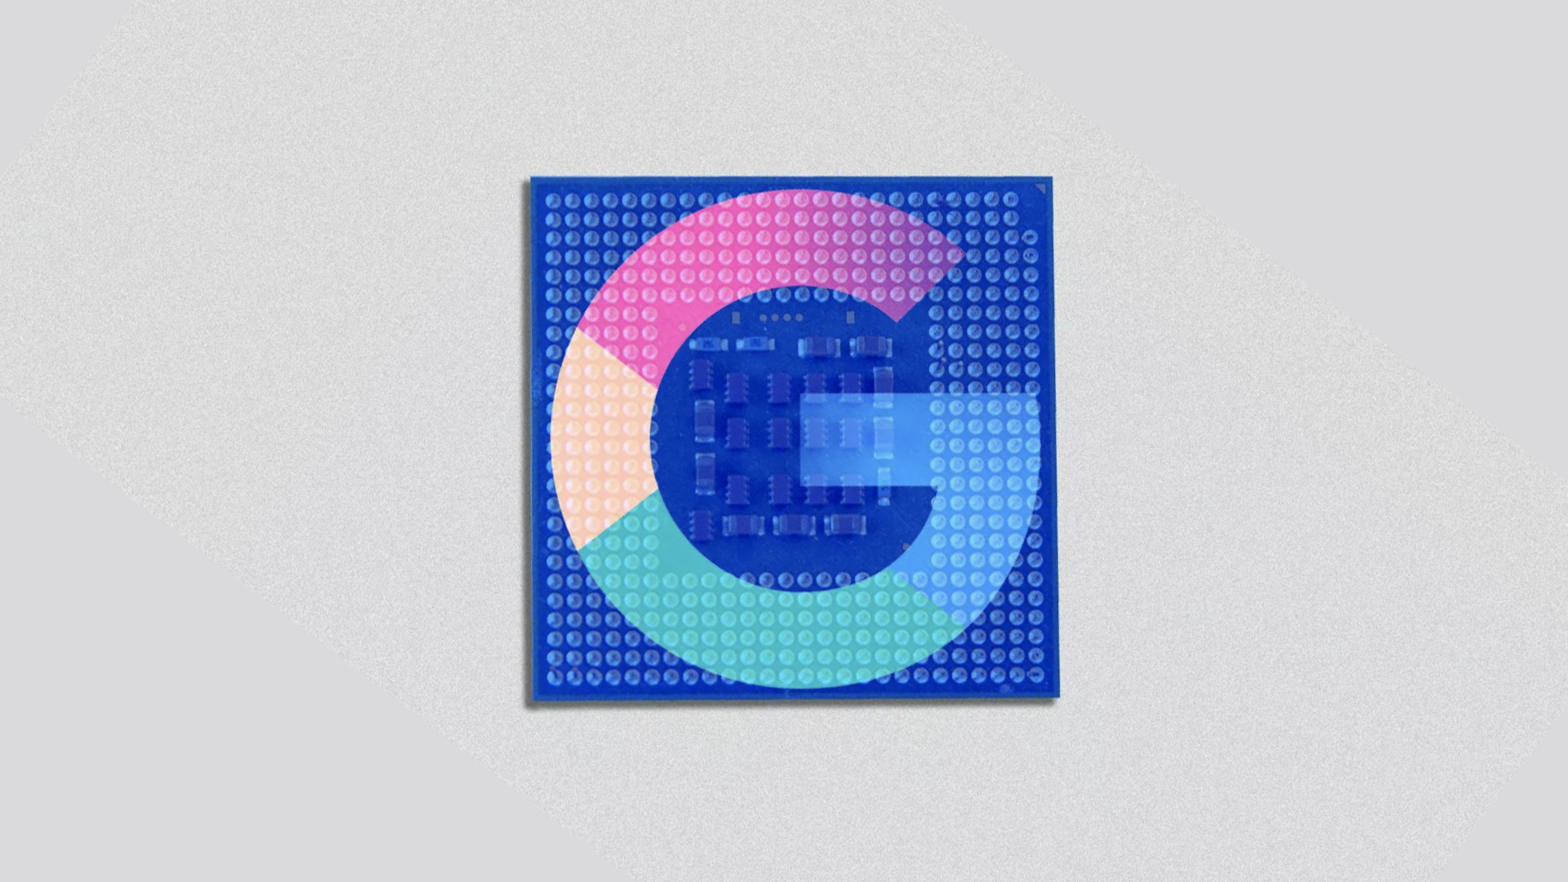 Video: Google Pixels could say goodbye to Qualcomm soon